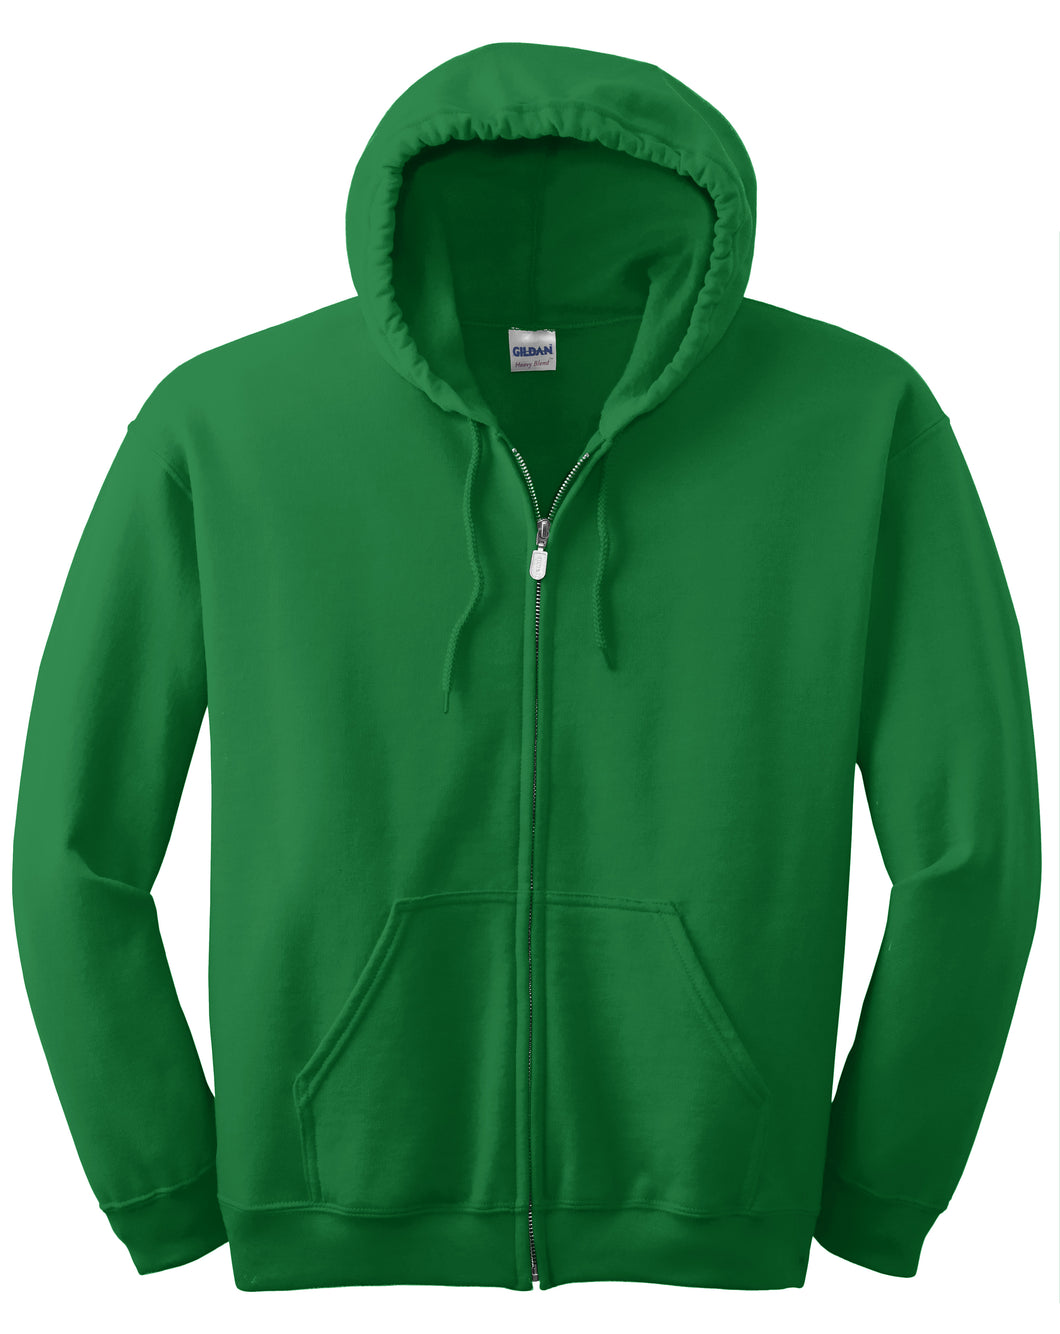 Garment Styles - Full-Zip Hooded Sweatshirt